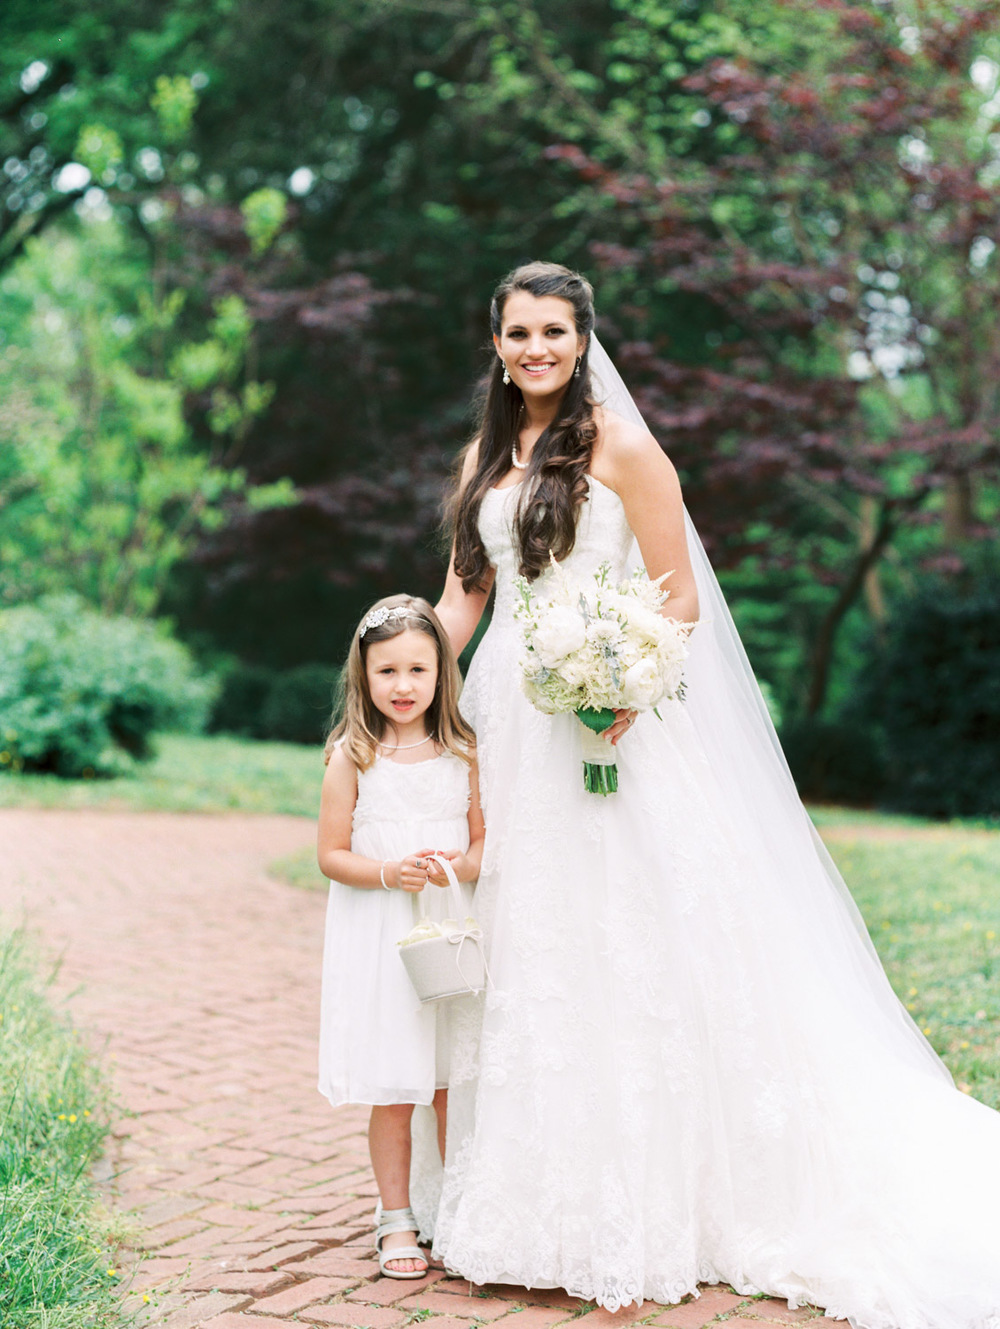 Tuckahoe_Plantation_Lynchburg_Richmond_ Virginia_Charlottesville_Wedding_Photographer-20.jpg